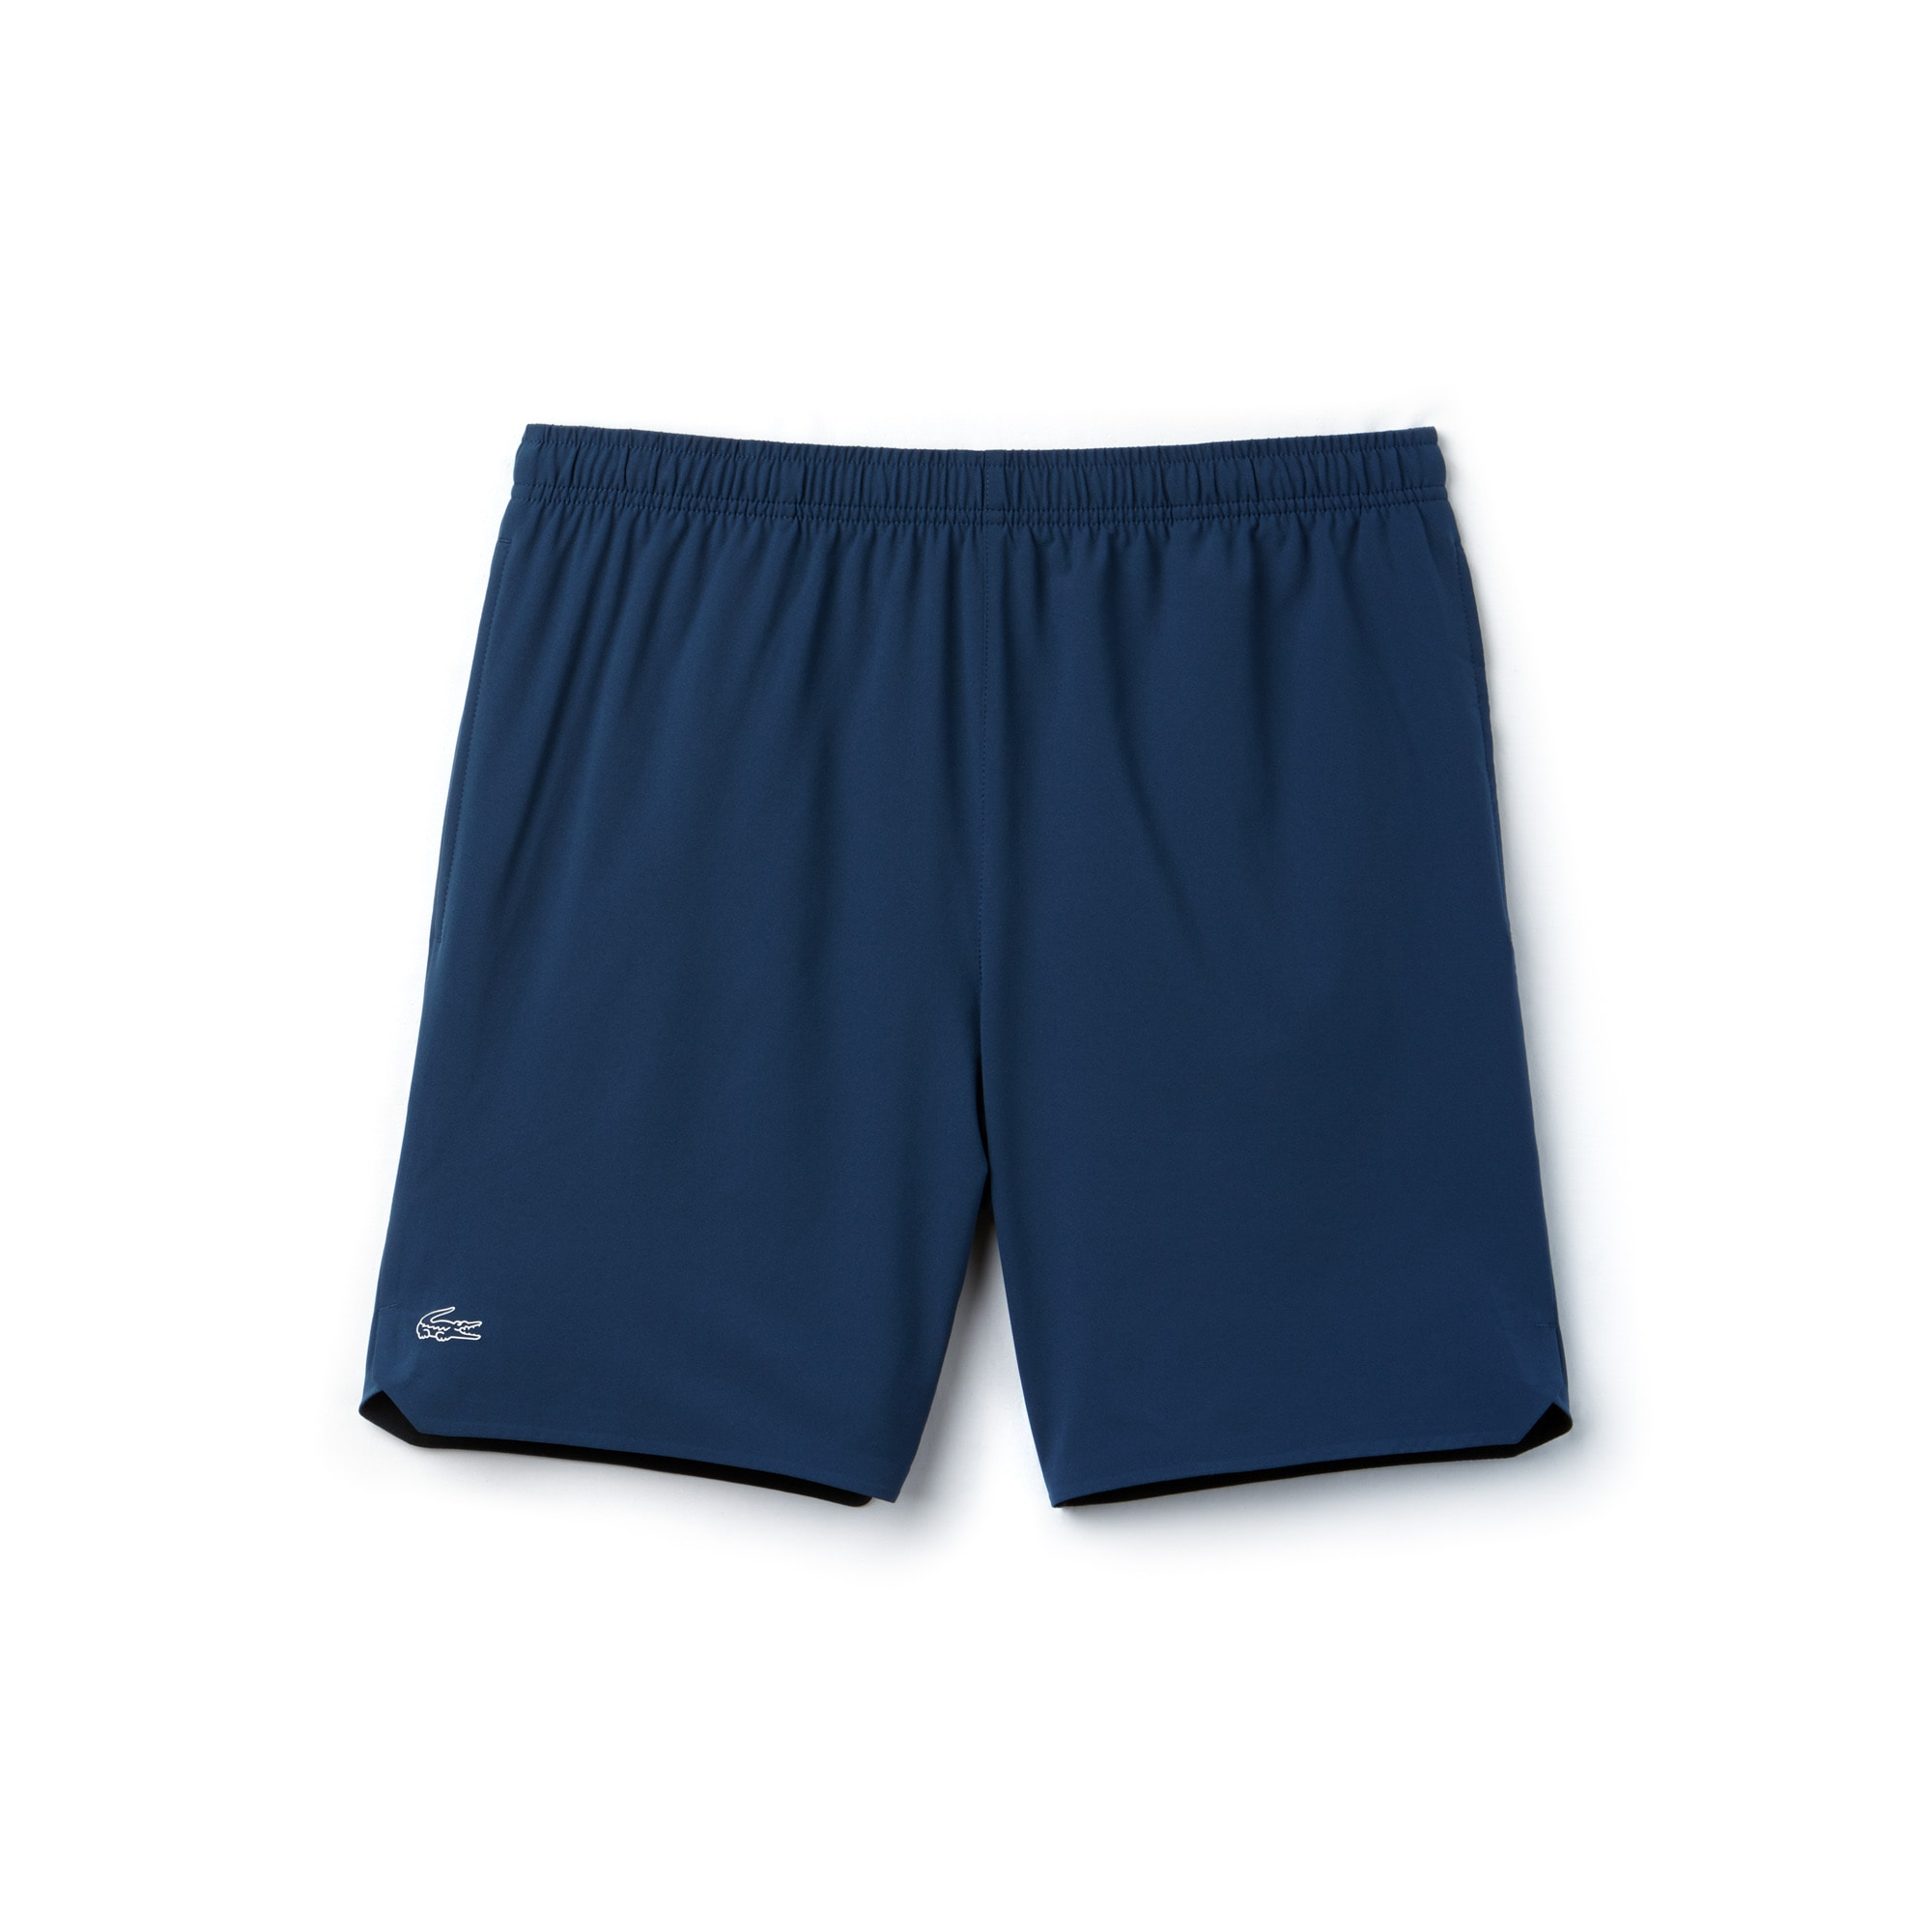 Men's SPORT Technical Tennis Shorts